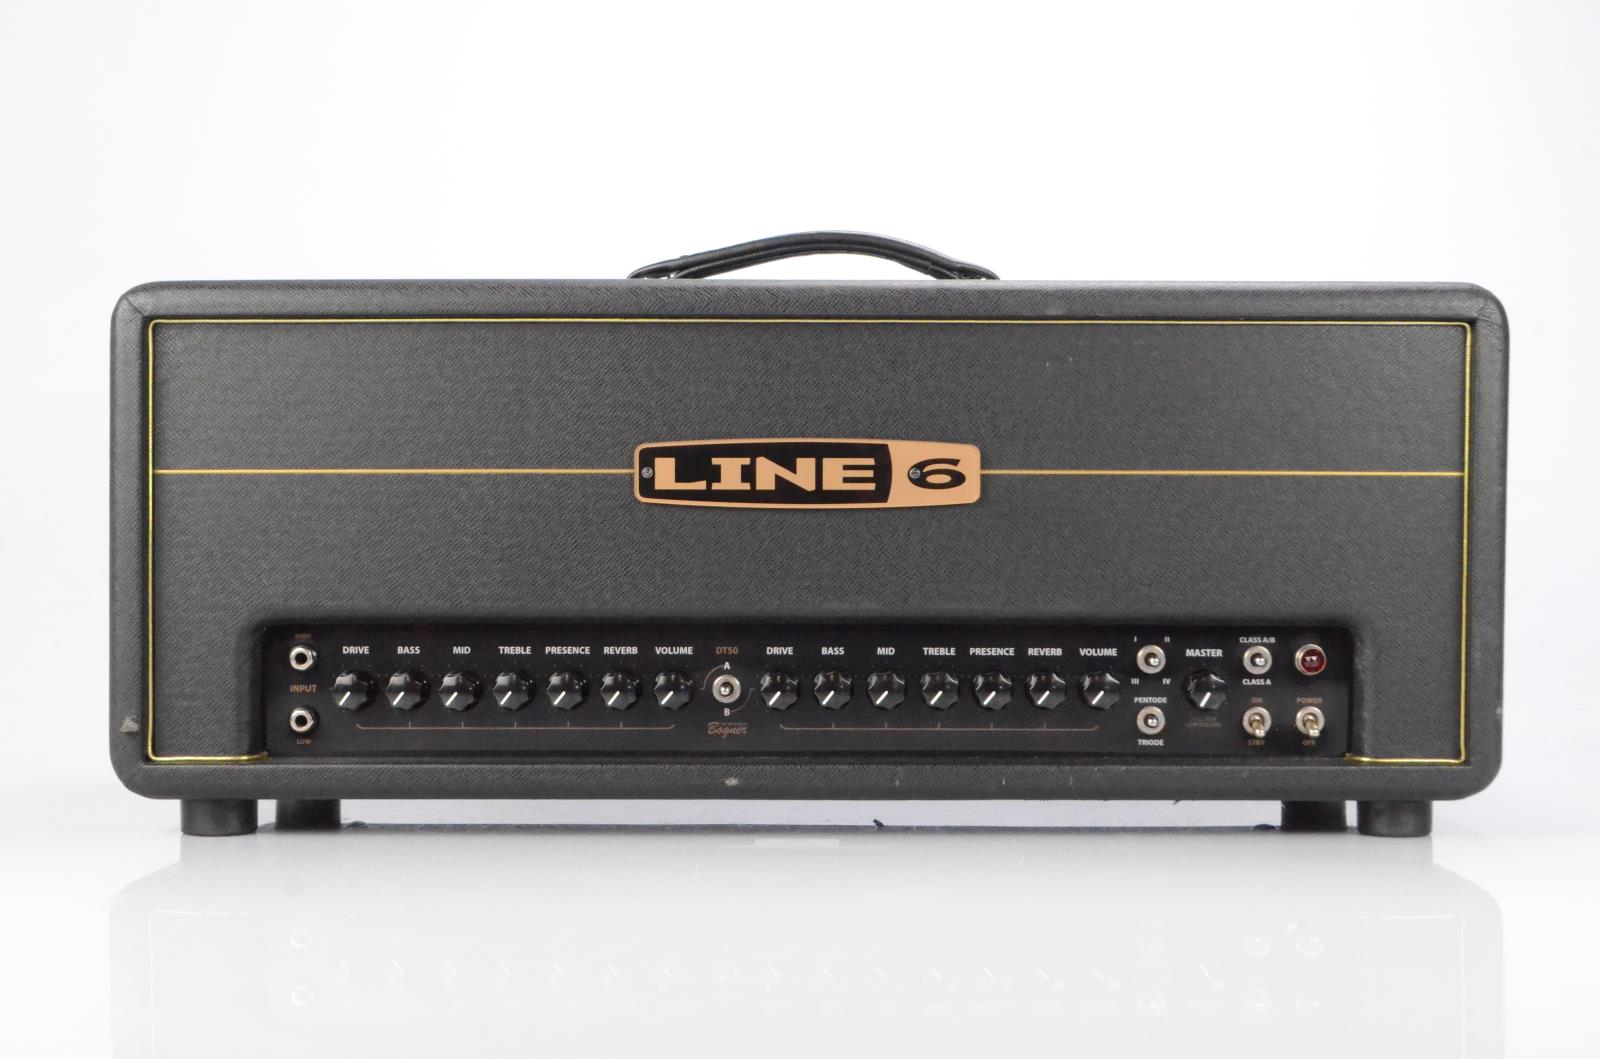 Line 6 DT50 Tube Guitar Amplifier Amp Head Bogner Owned by Carlos Rios #33940